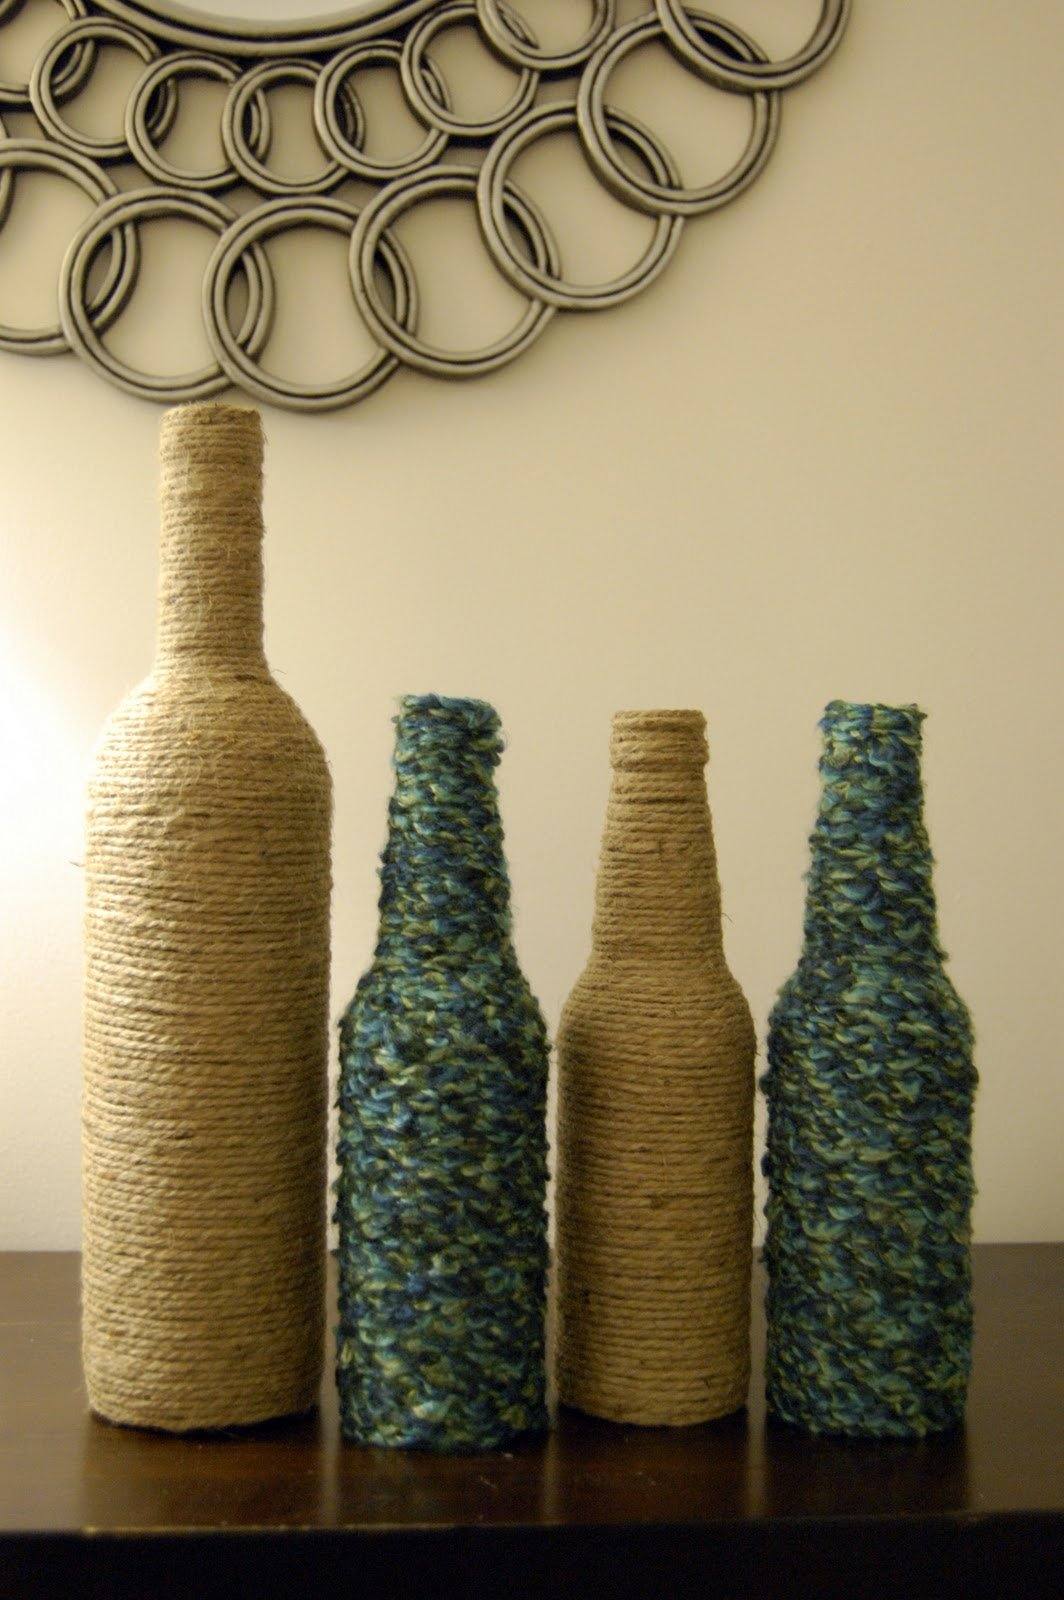 Don't Throw Those Empty Beer Bottles Yet! Here Are 15 Cool DIY Things You Can Do